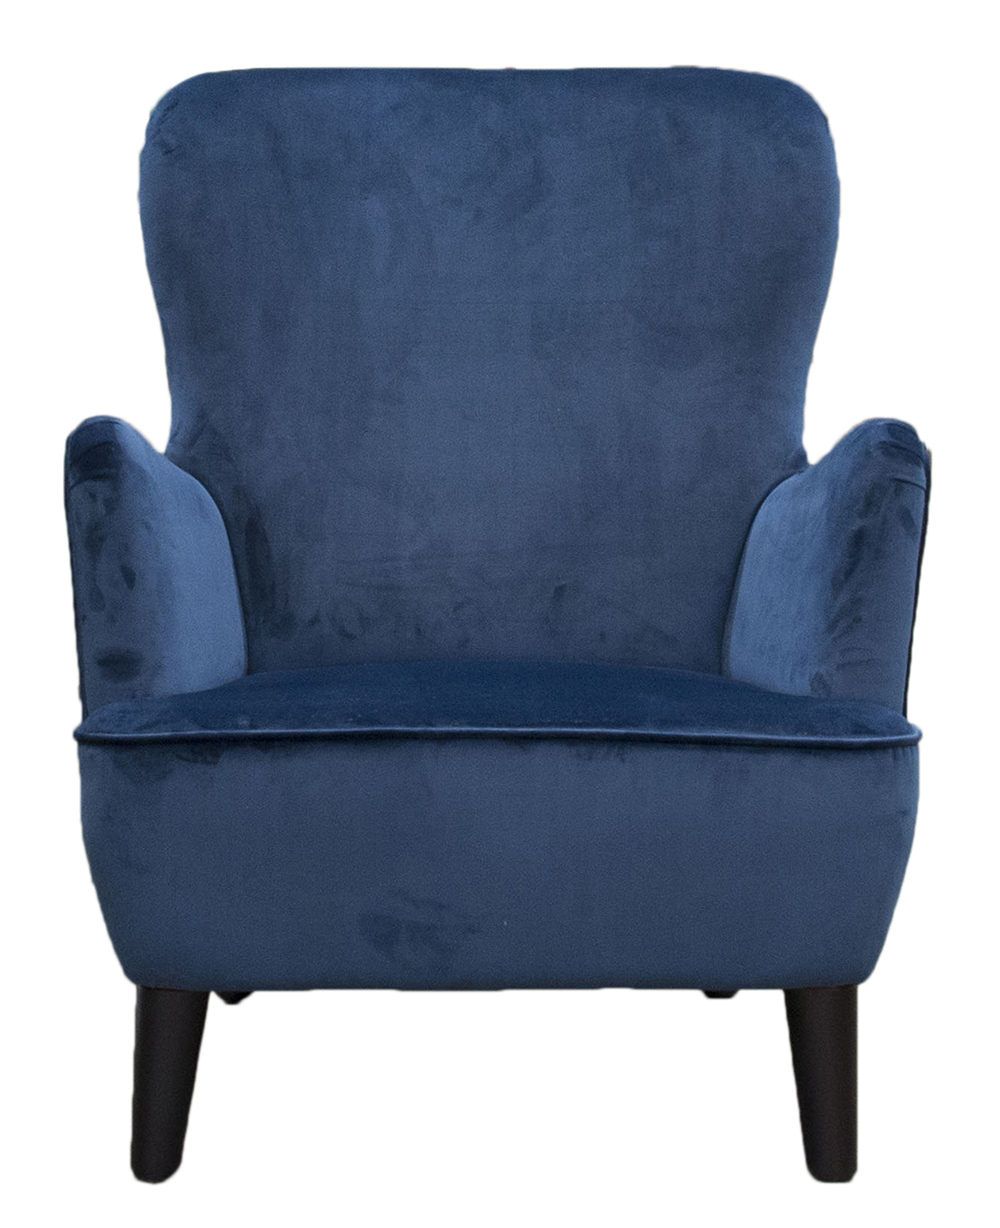 Holly Chair - Luxur Pacific